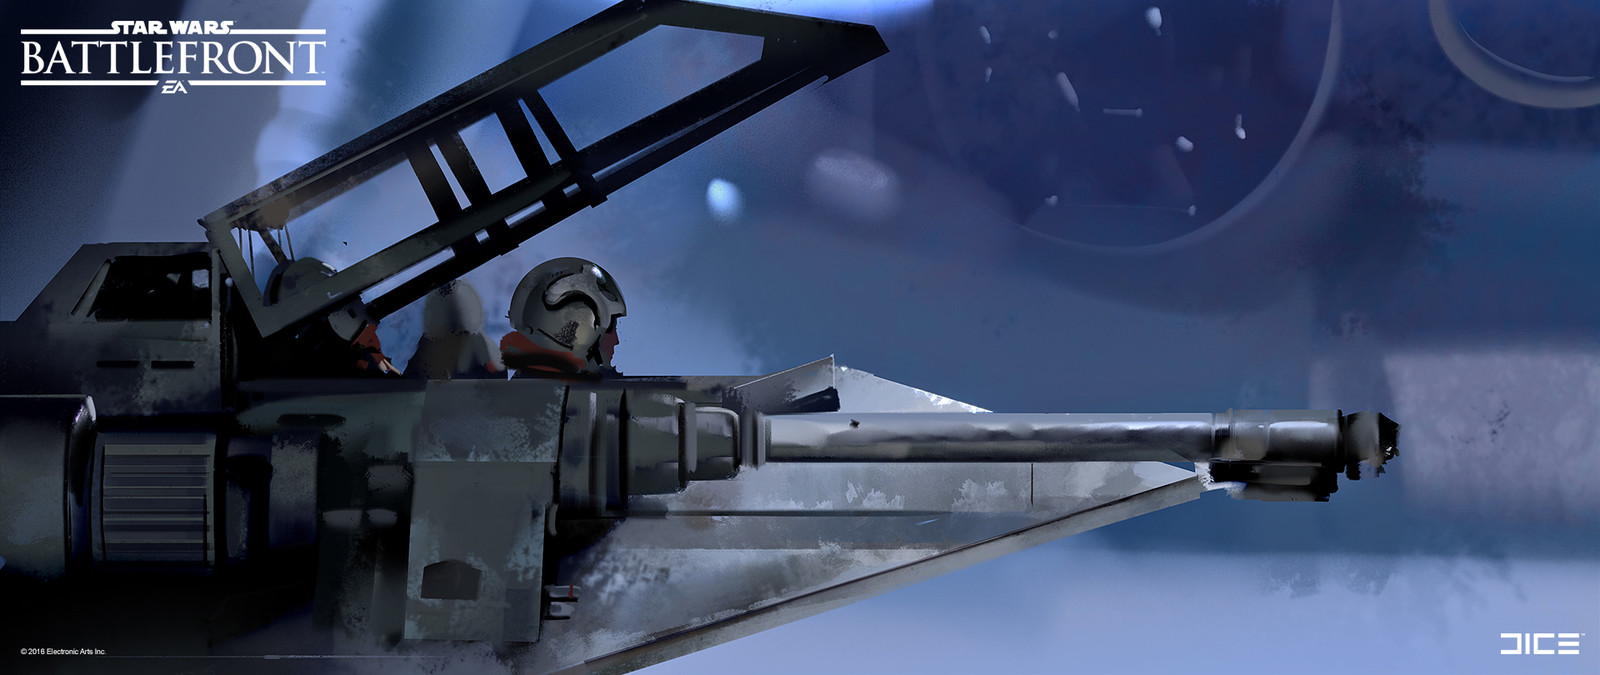 Style study from movie still for the 2015 Star Wars Battlefront game. (2013)